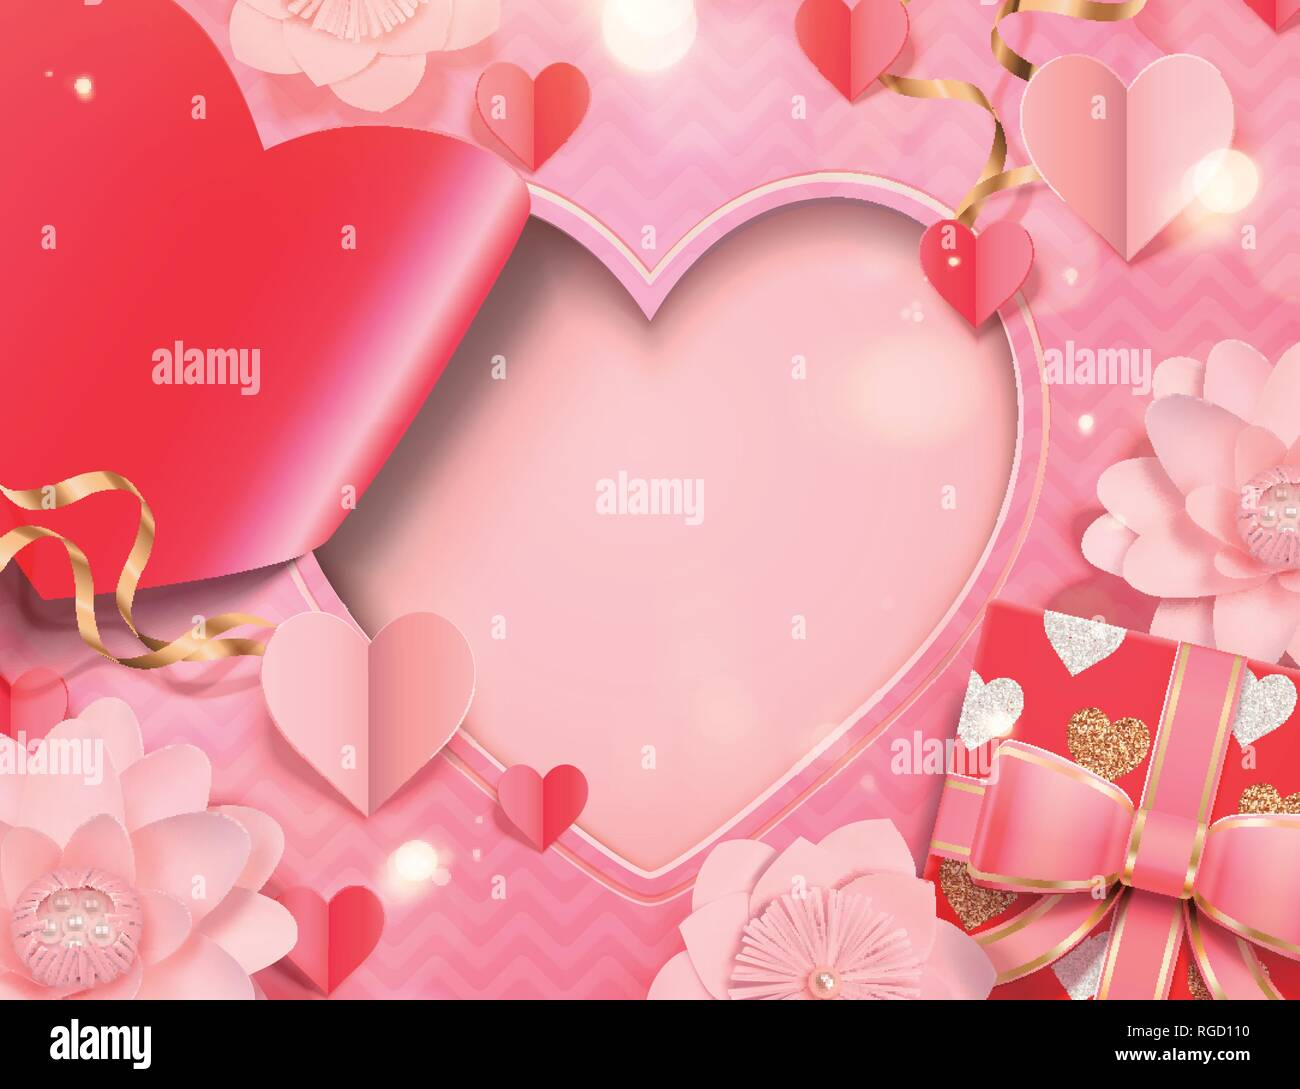 Valentine's day card template with paper heart shape and